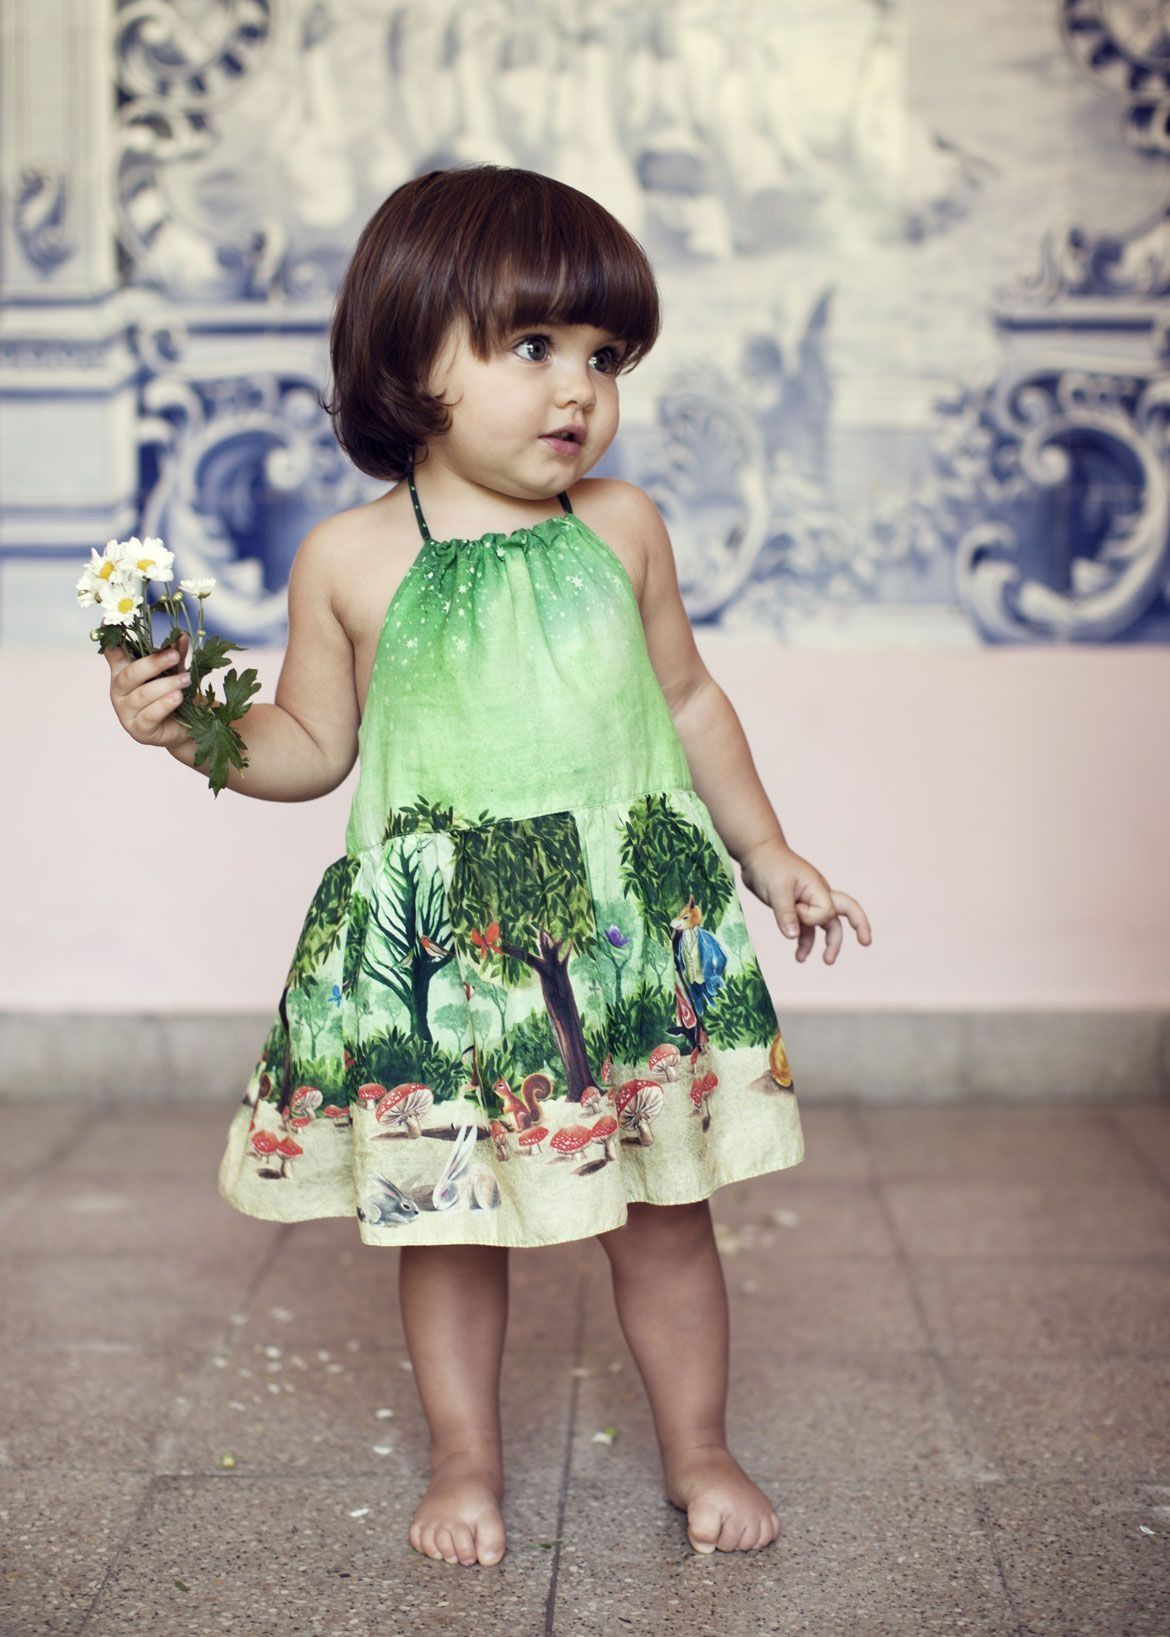 Green dress baby images  couture kids childrens fashion style baby girl summer printed green